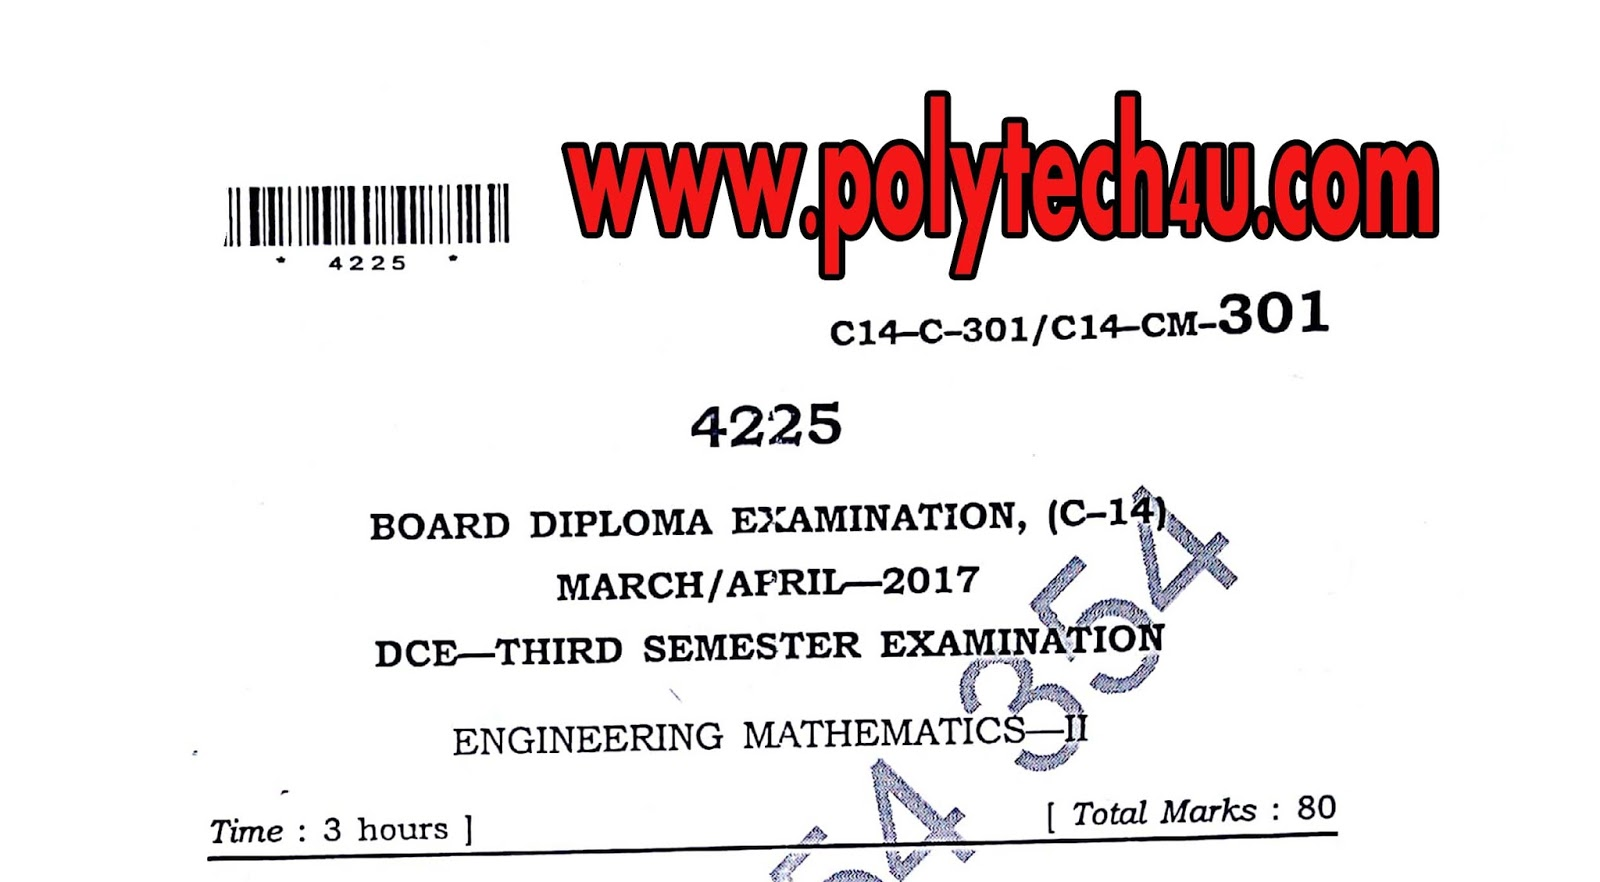 Polytechnic c 14 dce sbtetap maths 2 previous question paper march 301 engineering mathematics 2 malvernweather Image collections